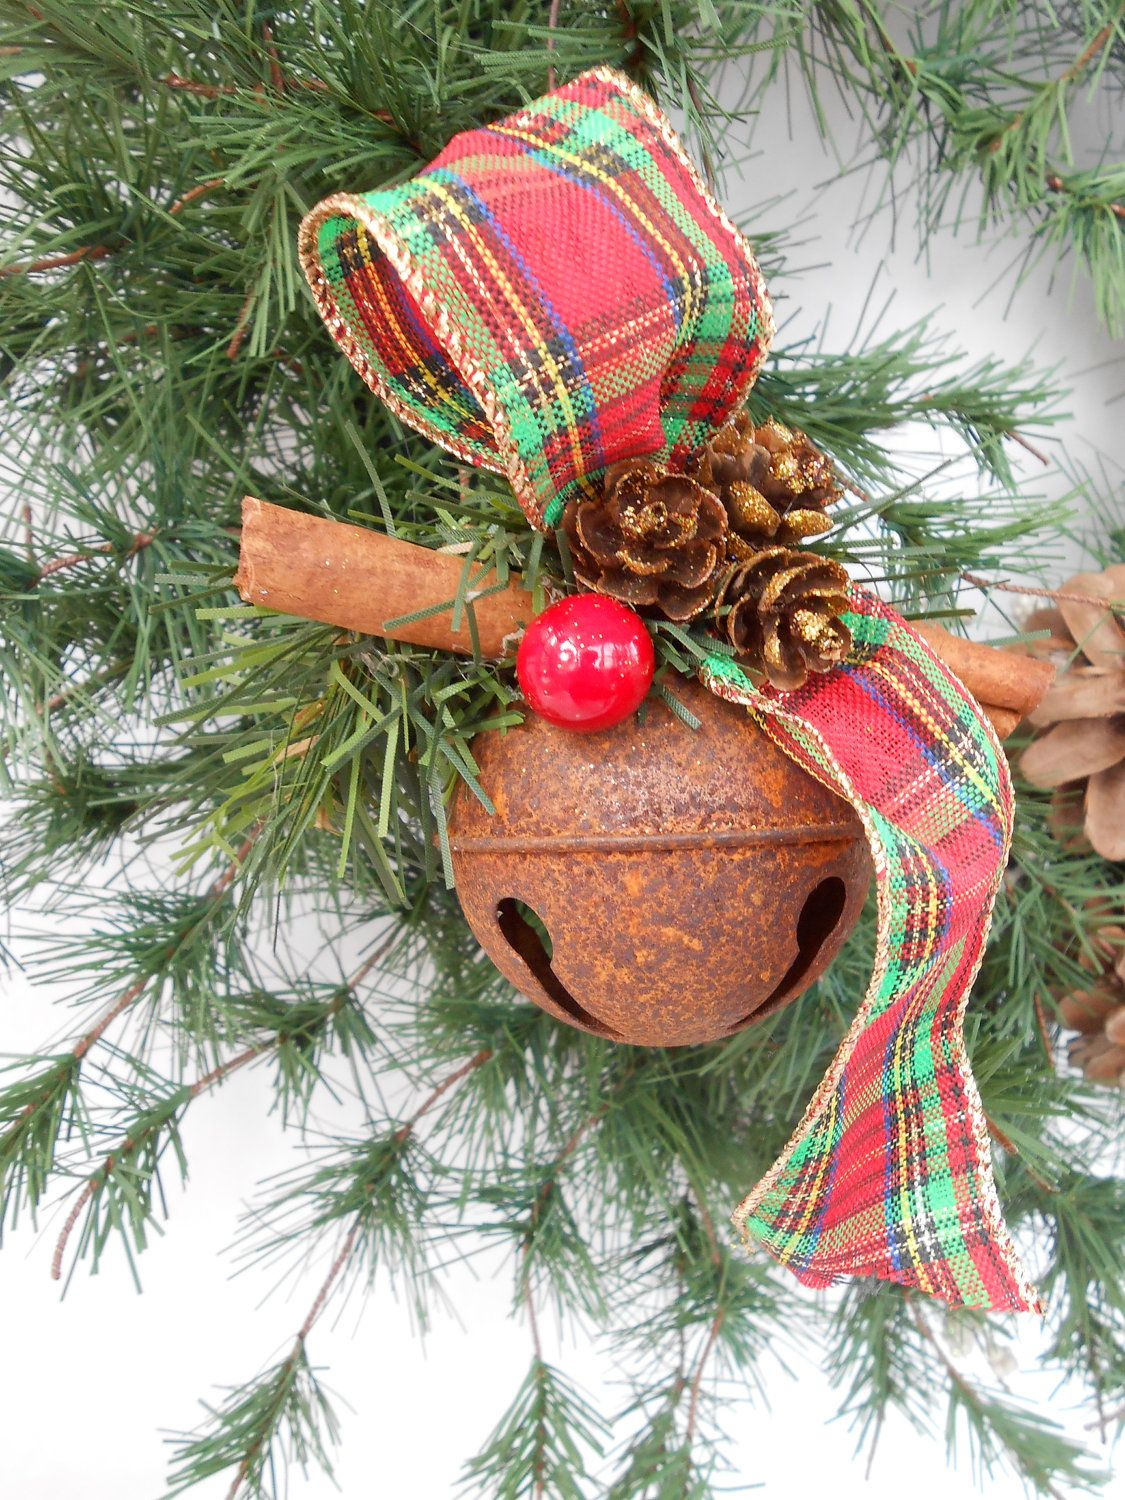 Country rustic jingle bell ornament use coupon code